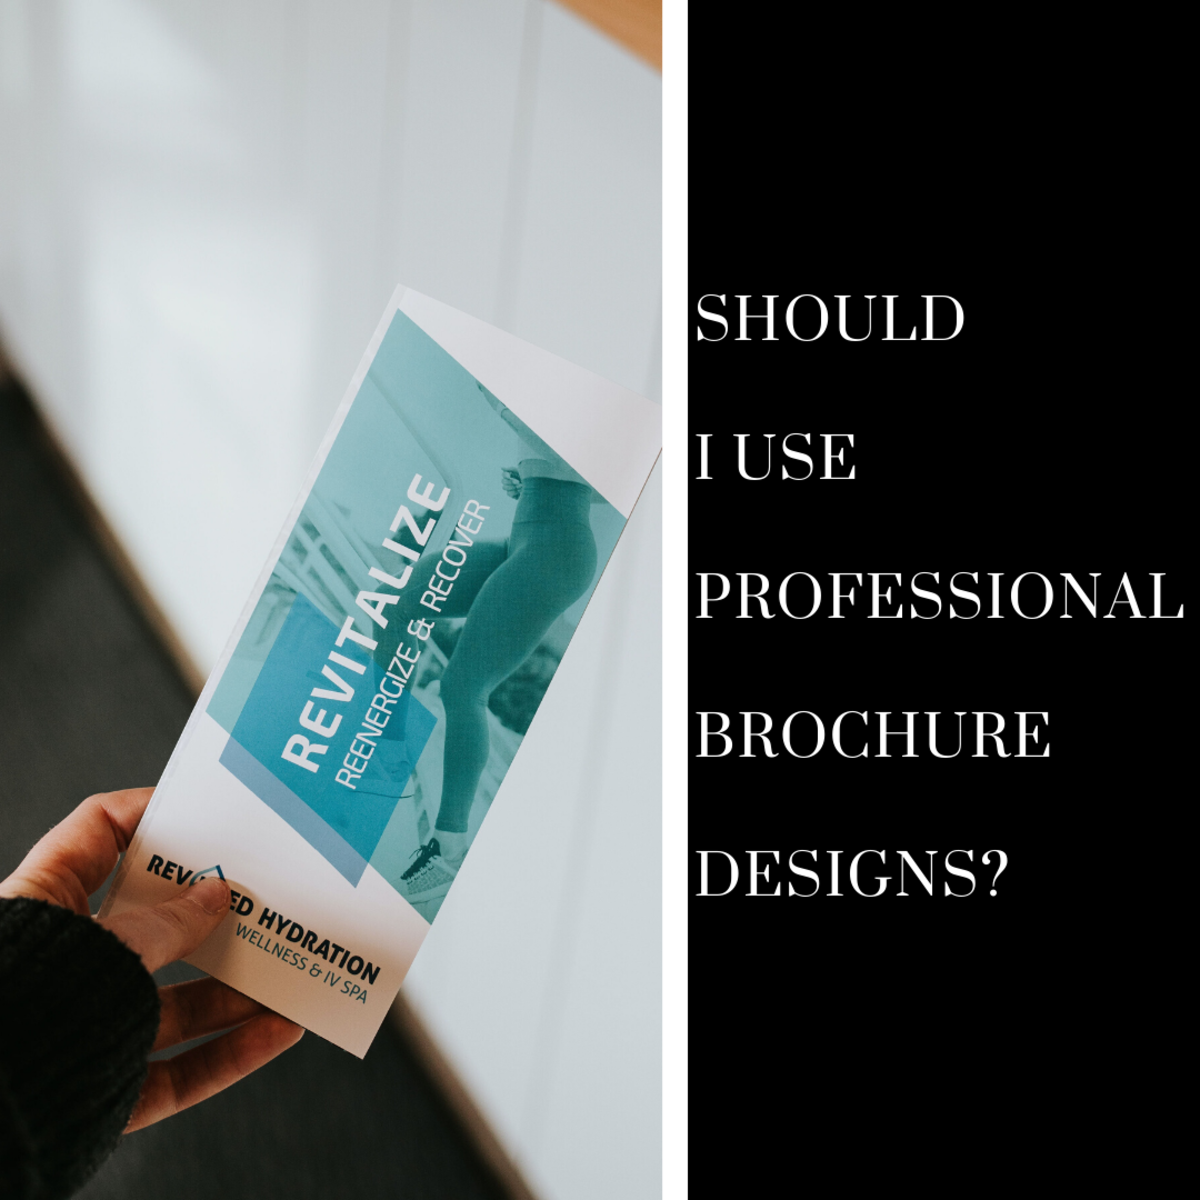 Should I Use Professional Brochure Designs?